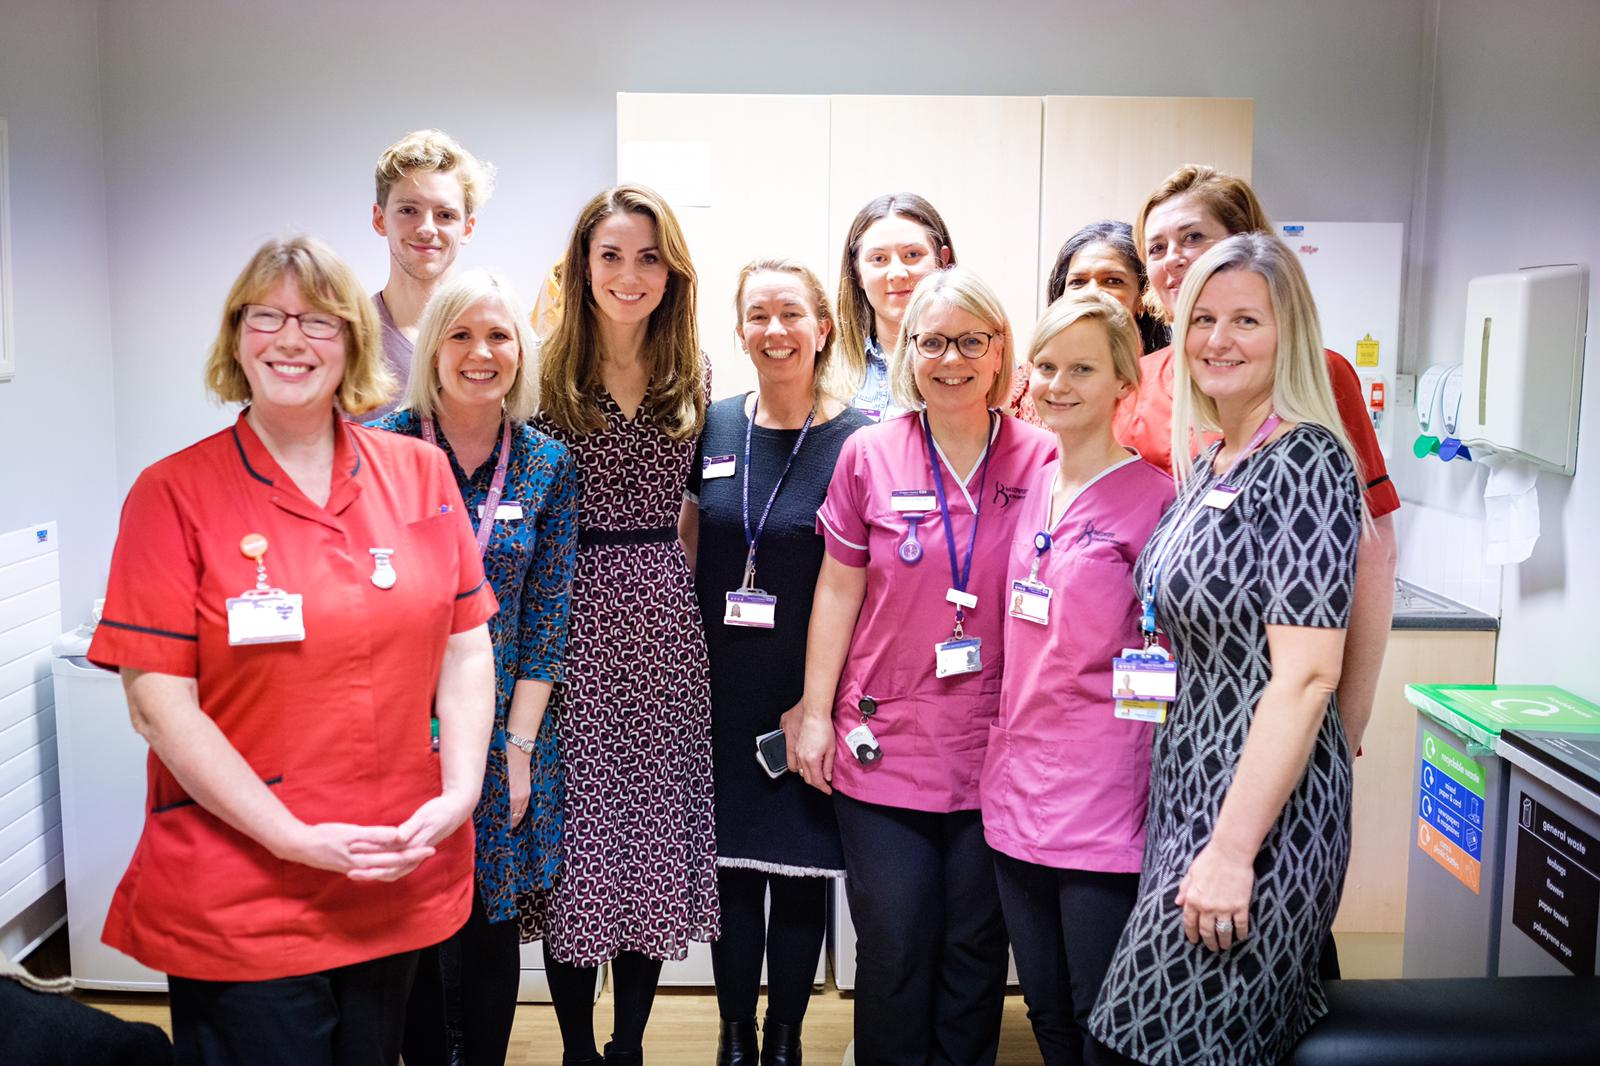 The Duchess of Cambridge writes an open letter to nurses